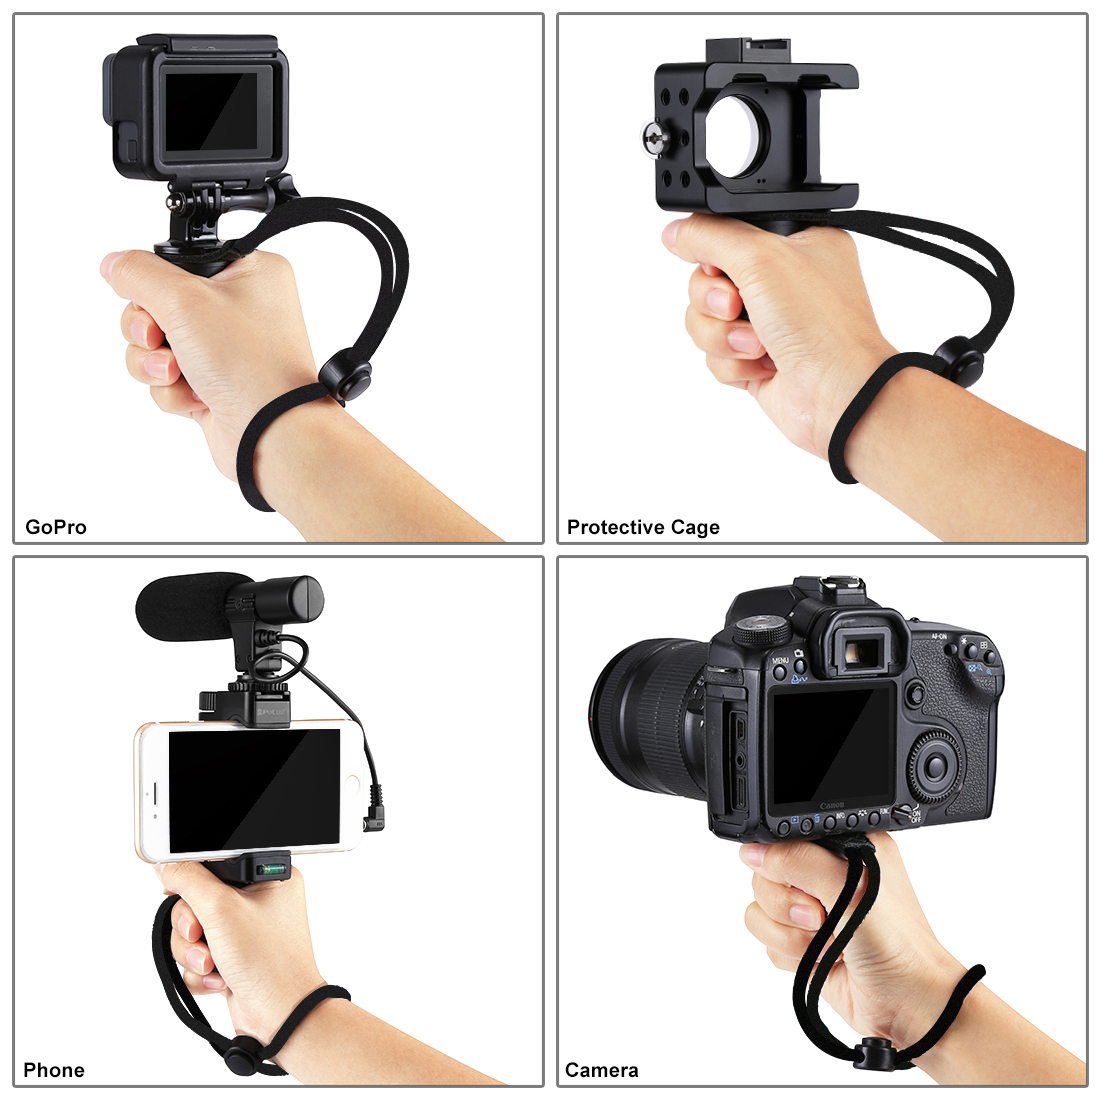 PULUZ PU366 Handheld Grip Rig Stabilizer ABS Tripod Adapter Mount with Cold Shoe Base Wrist Strap for Smartphones for DSLR Cameras for Action Cameras